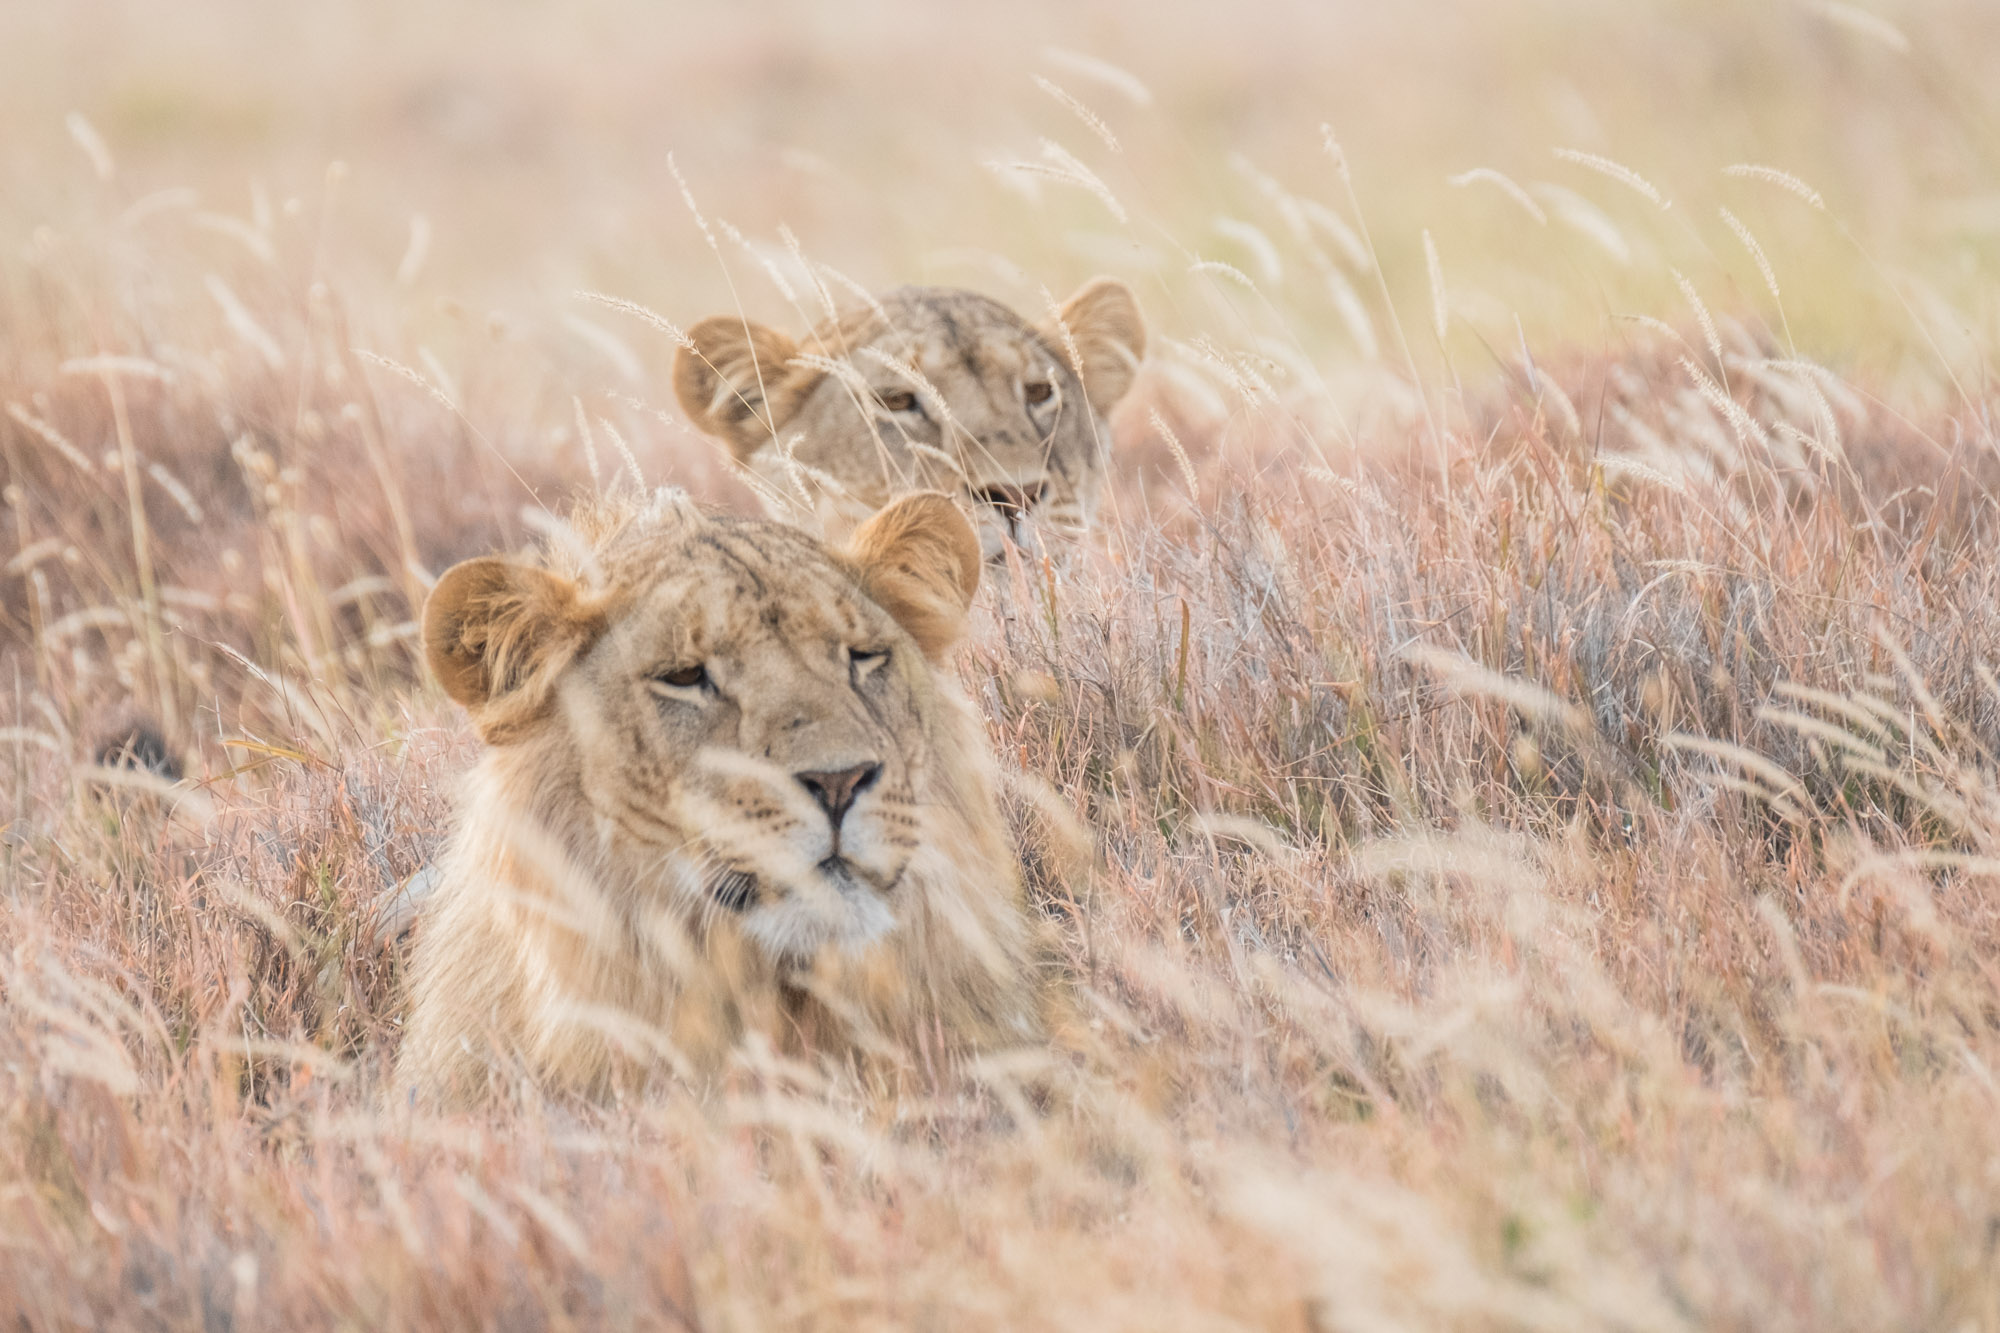 lions-in-grass-lewa-kenya-2018-01005